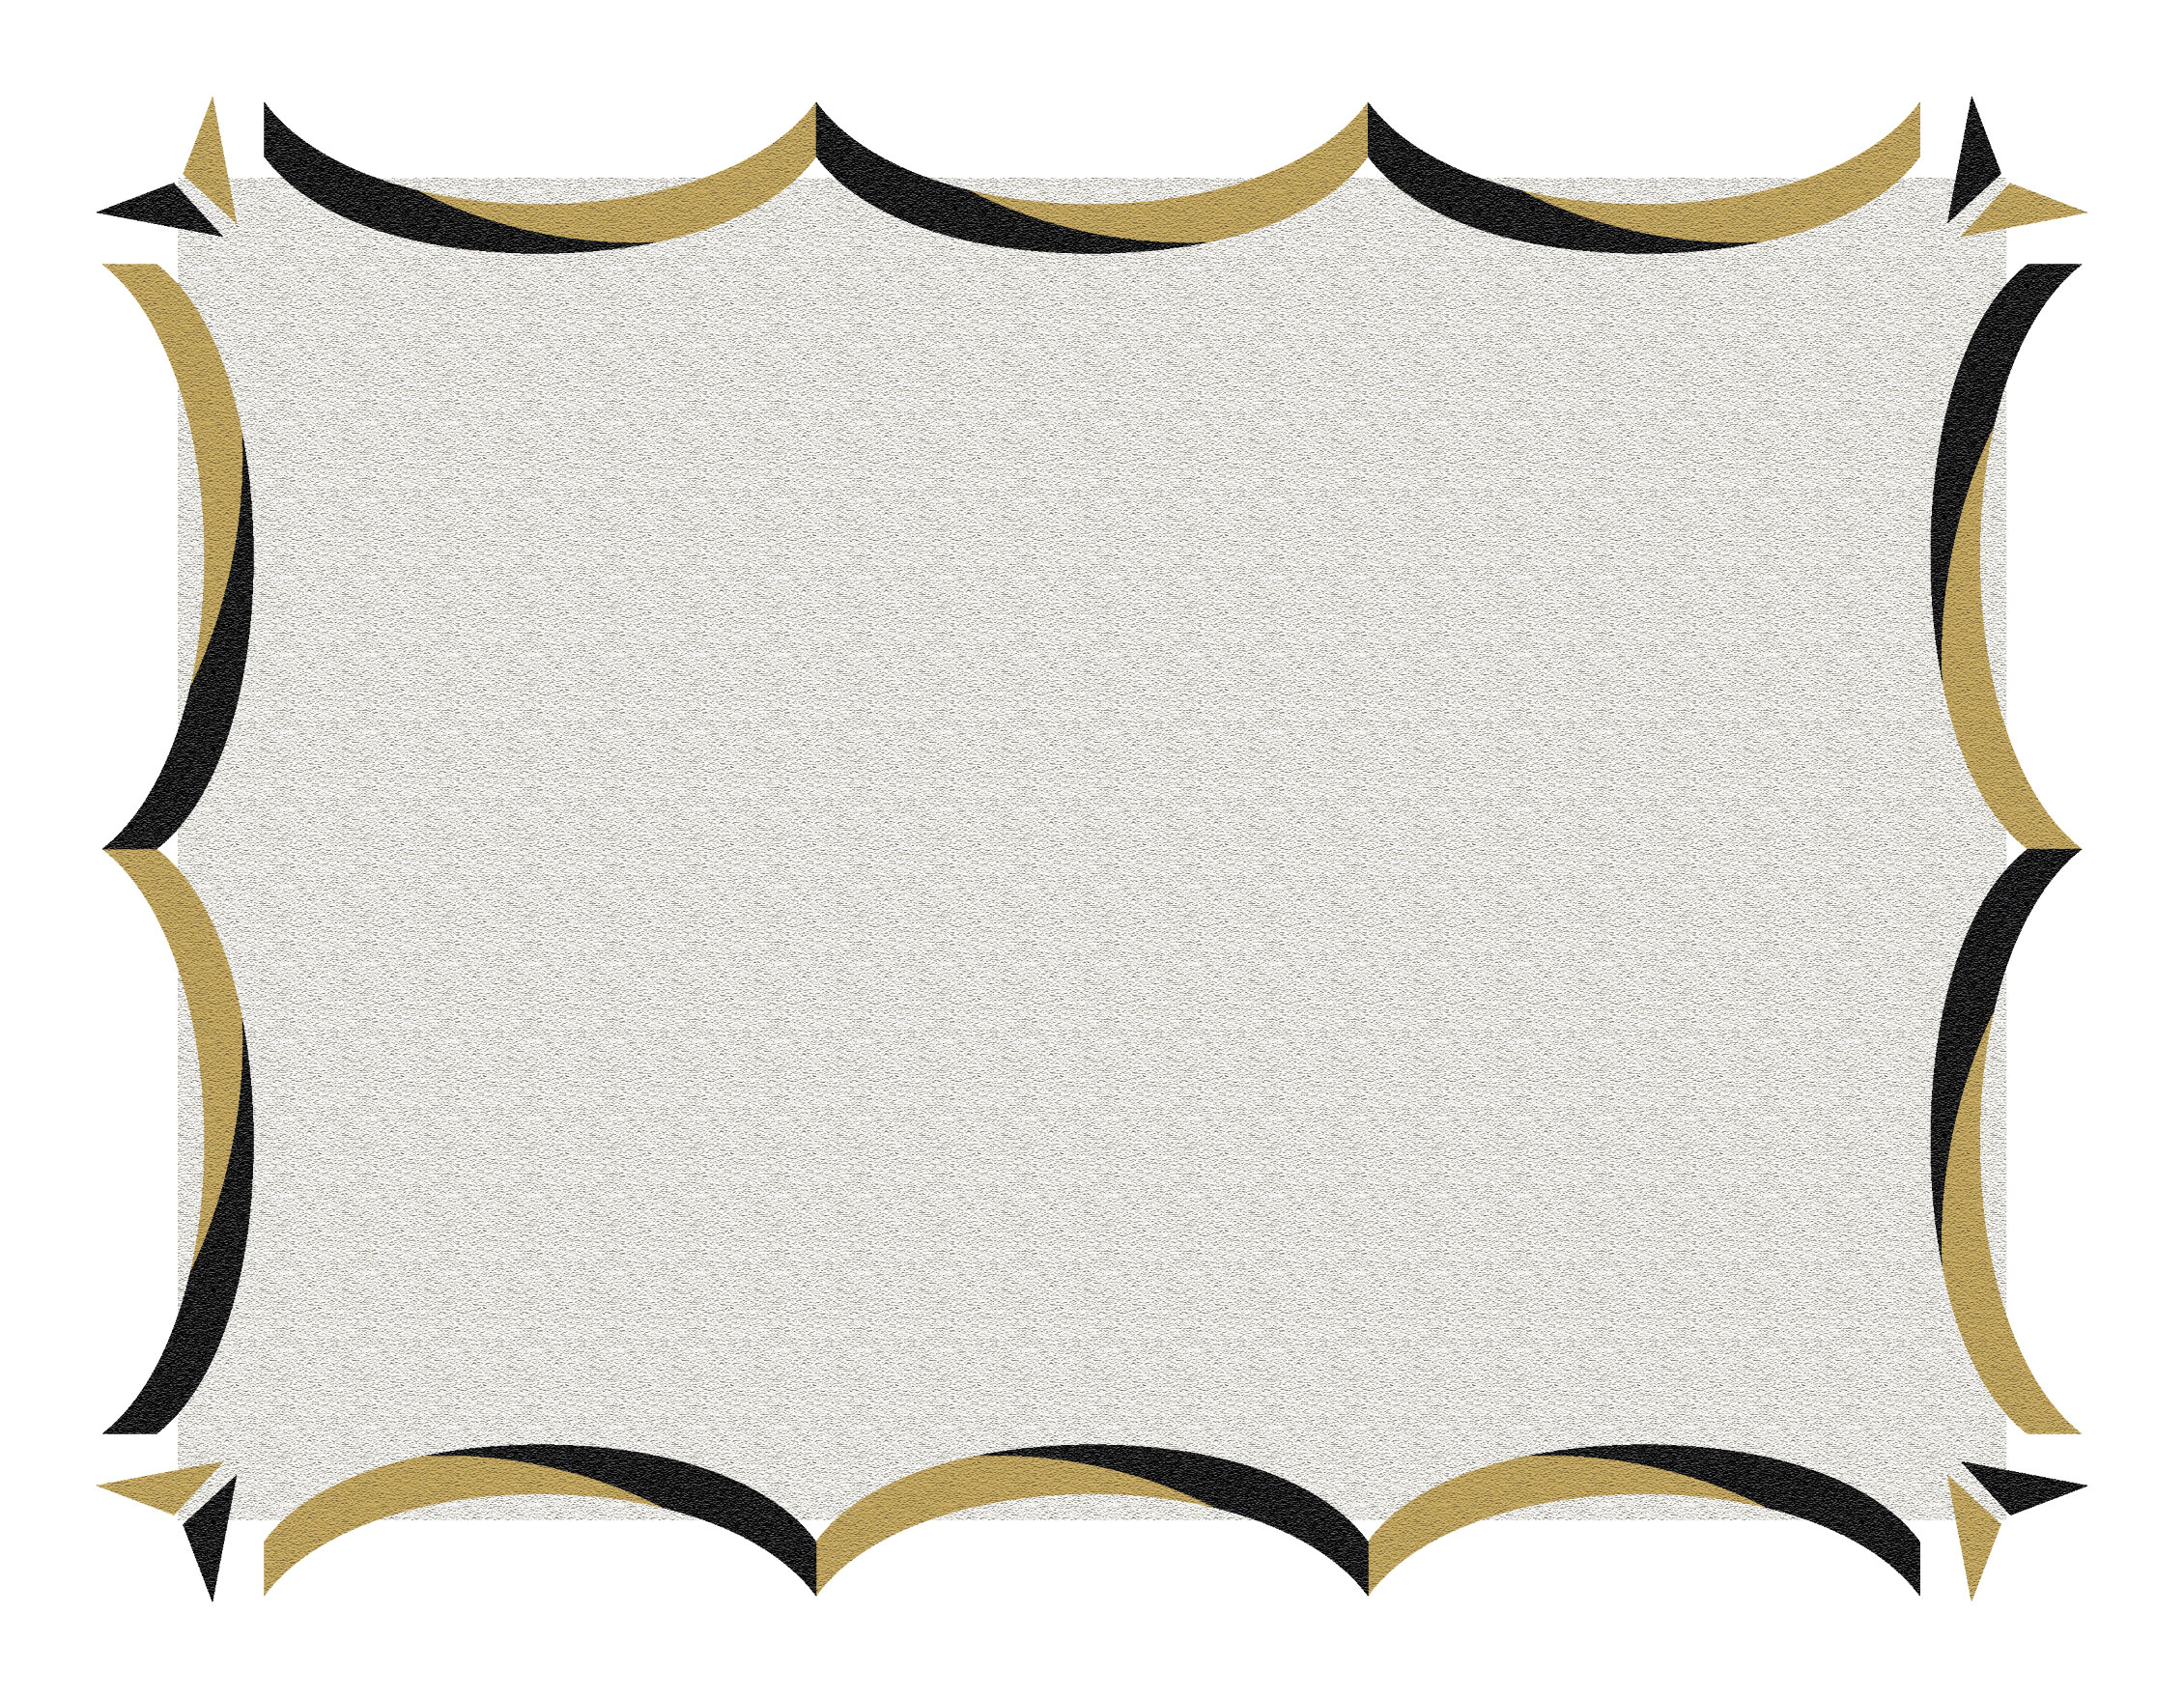 10 free certificate borders templates . Free cliparts that you can ...